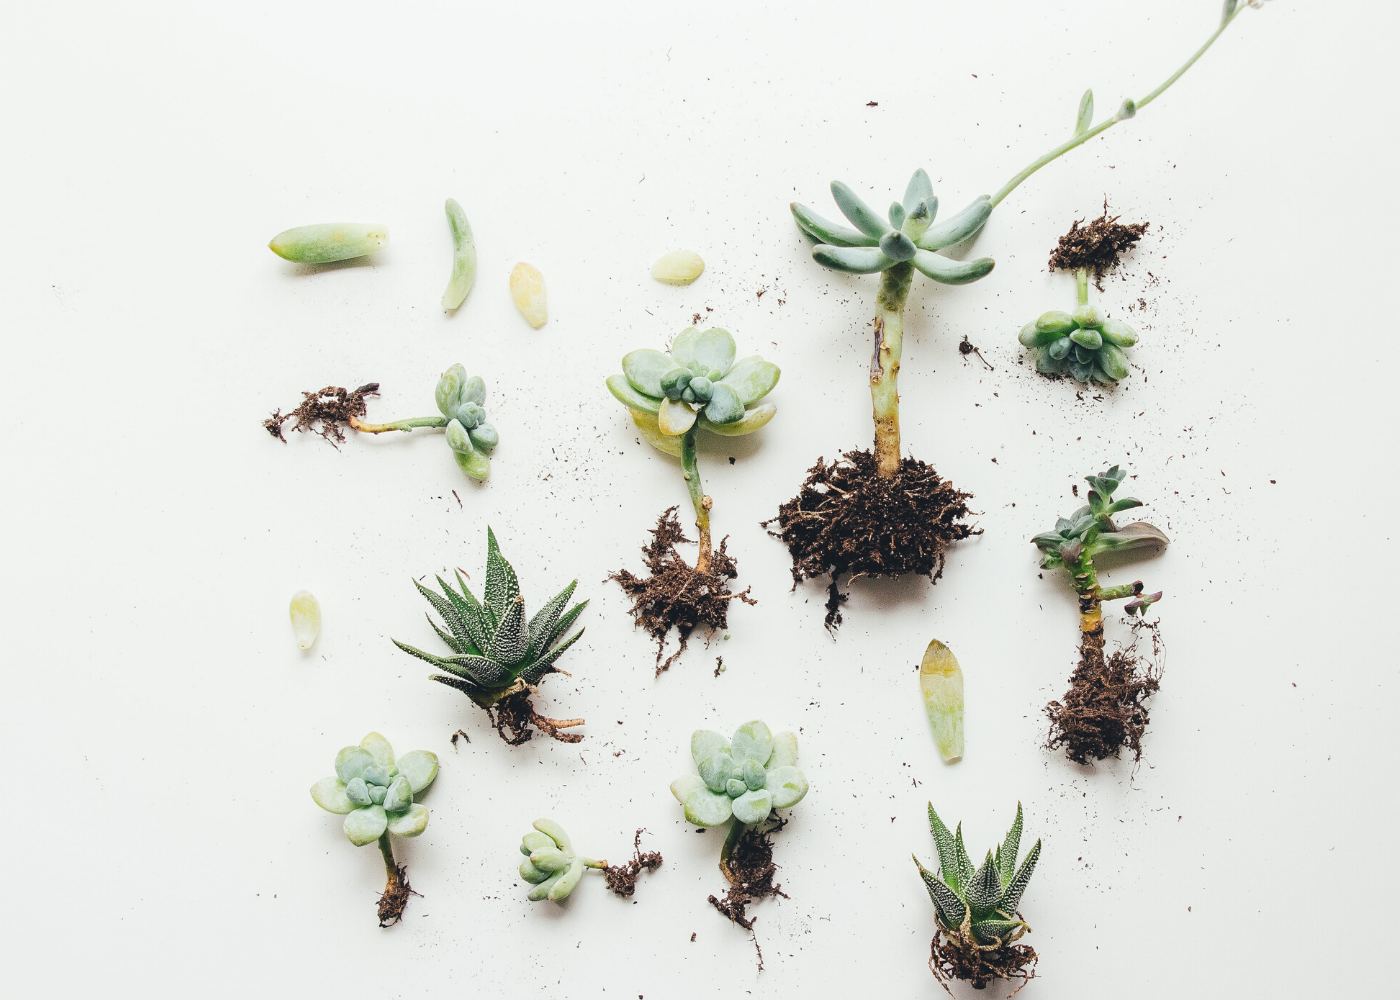 Plant parenthood: I tried caring for succulents during the circuit breaker and here's what I learned